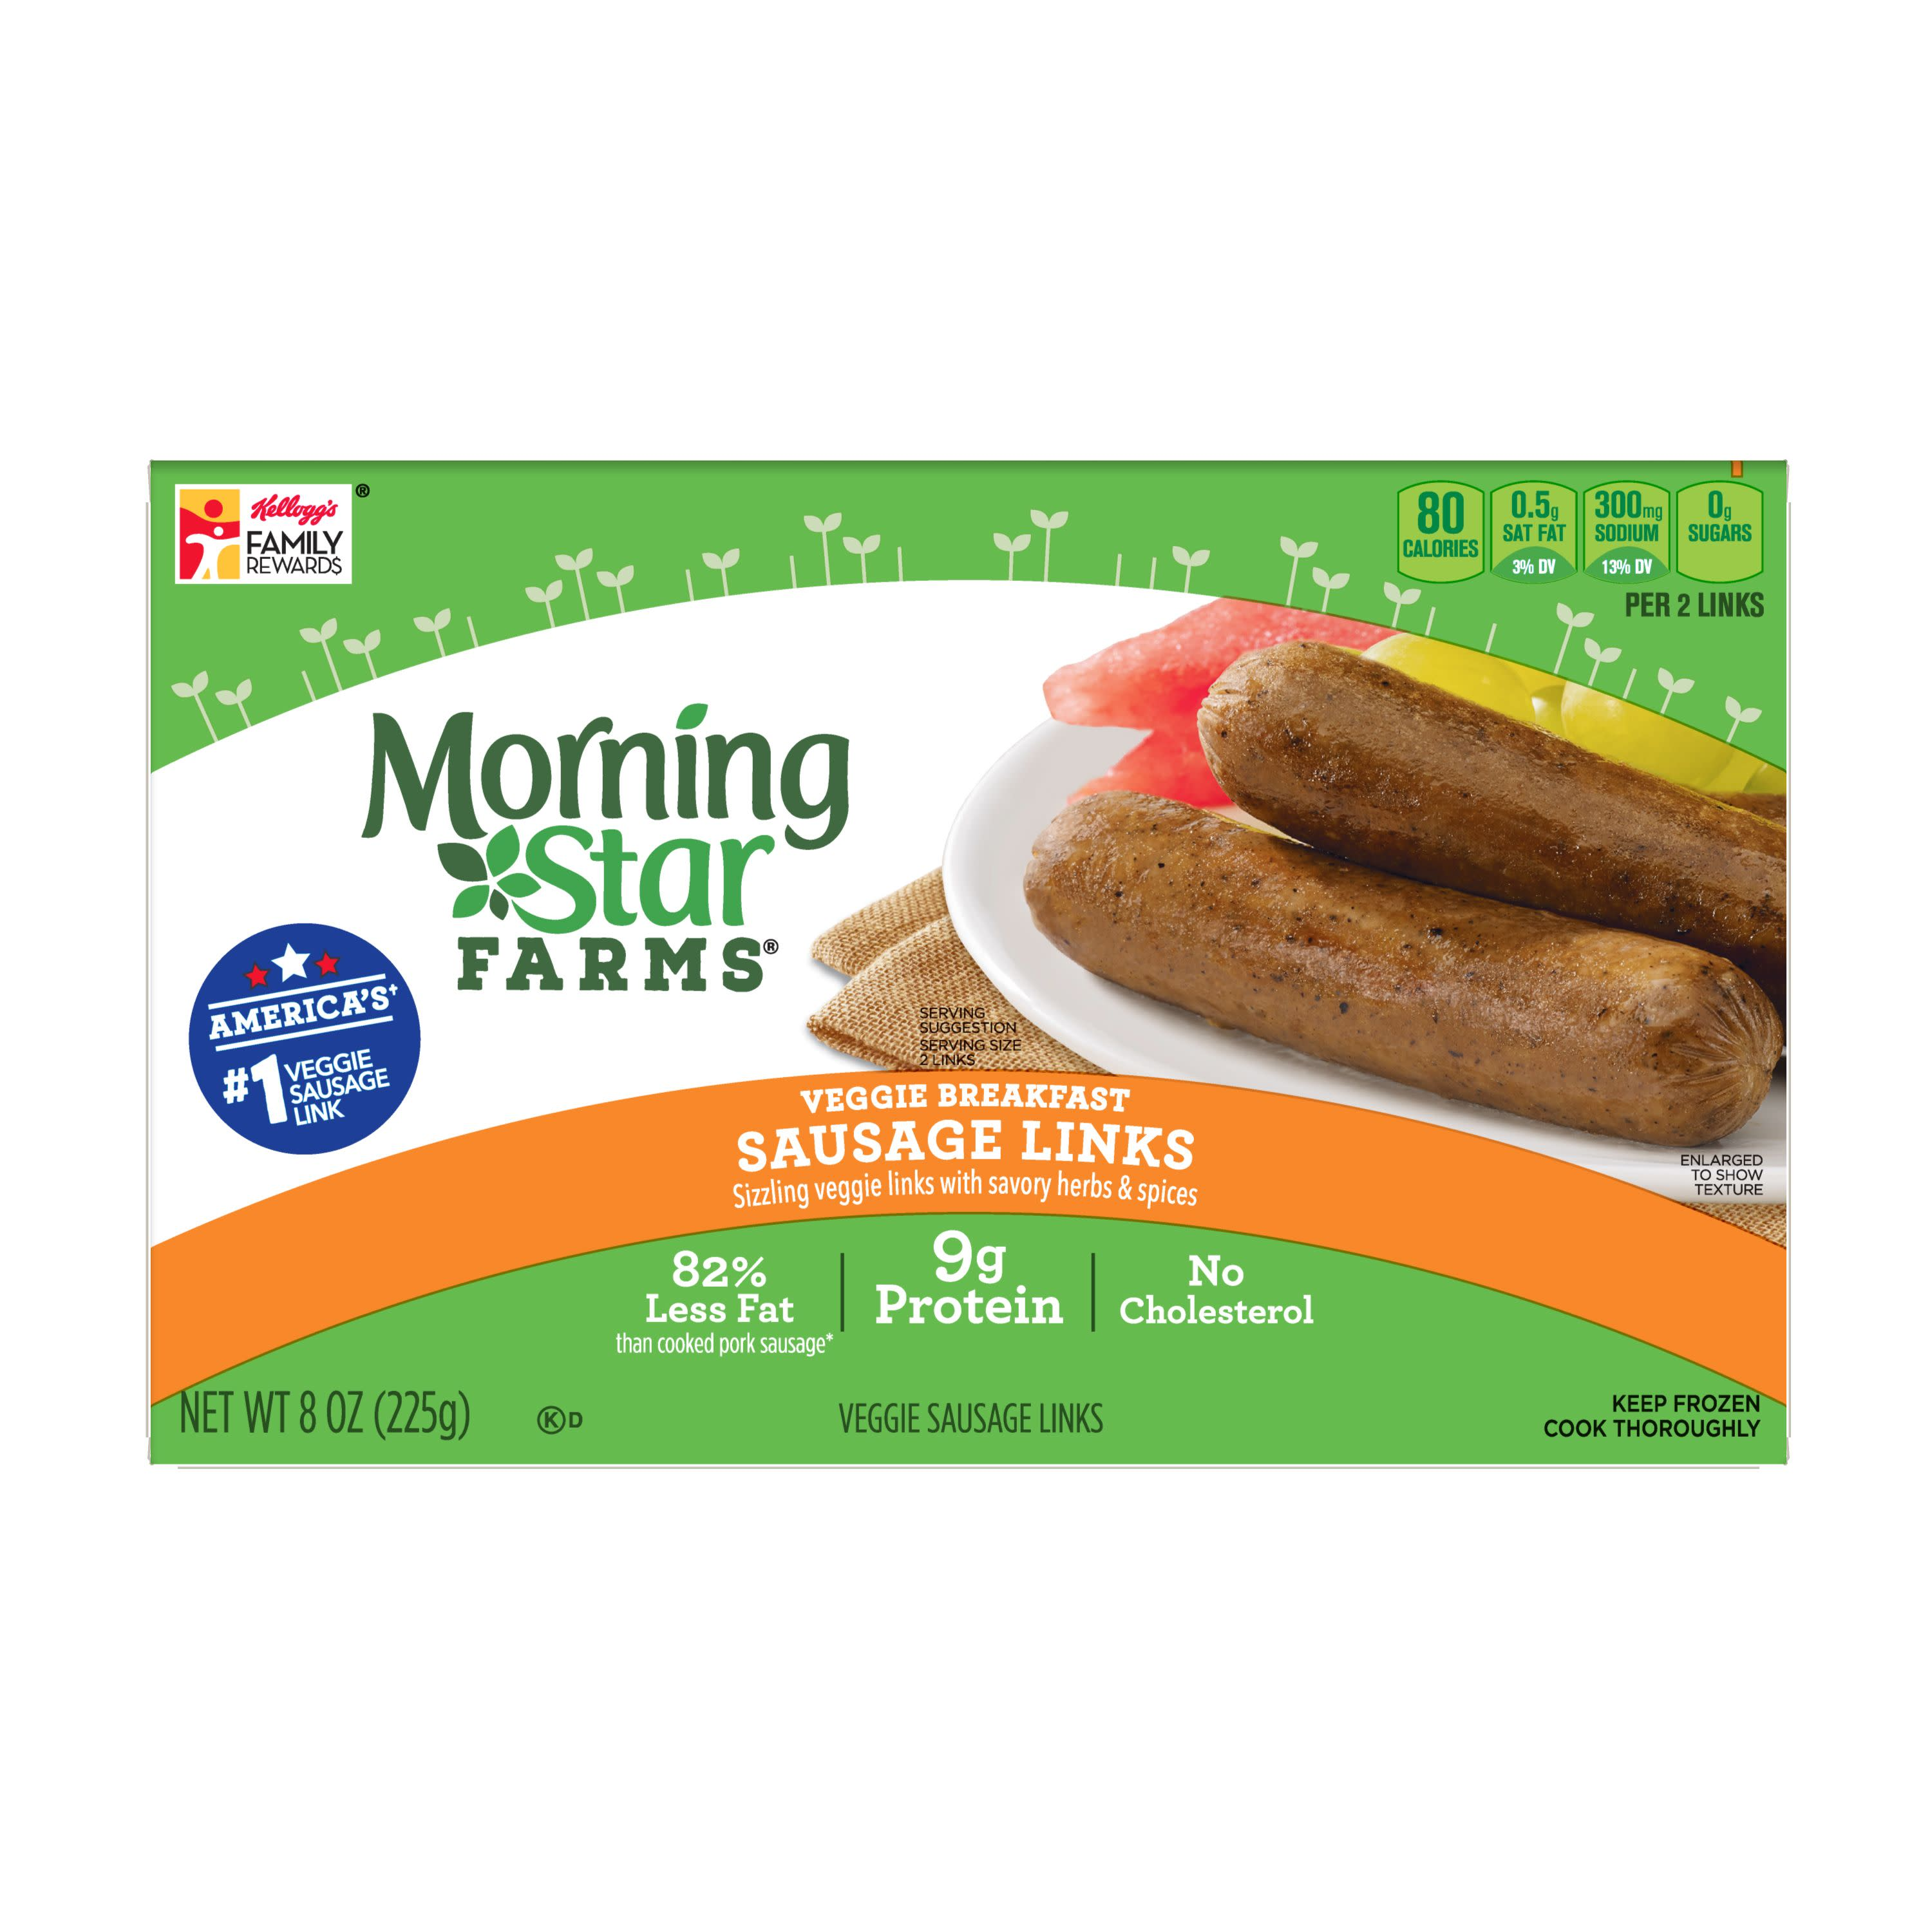 Morning Star Sausage Links Nutrition Facts Nutritionwalls